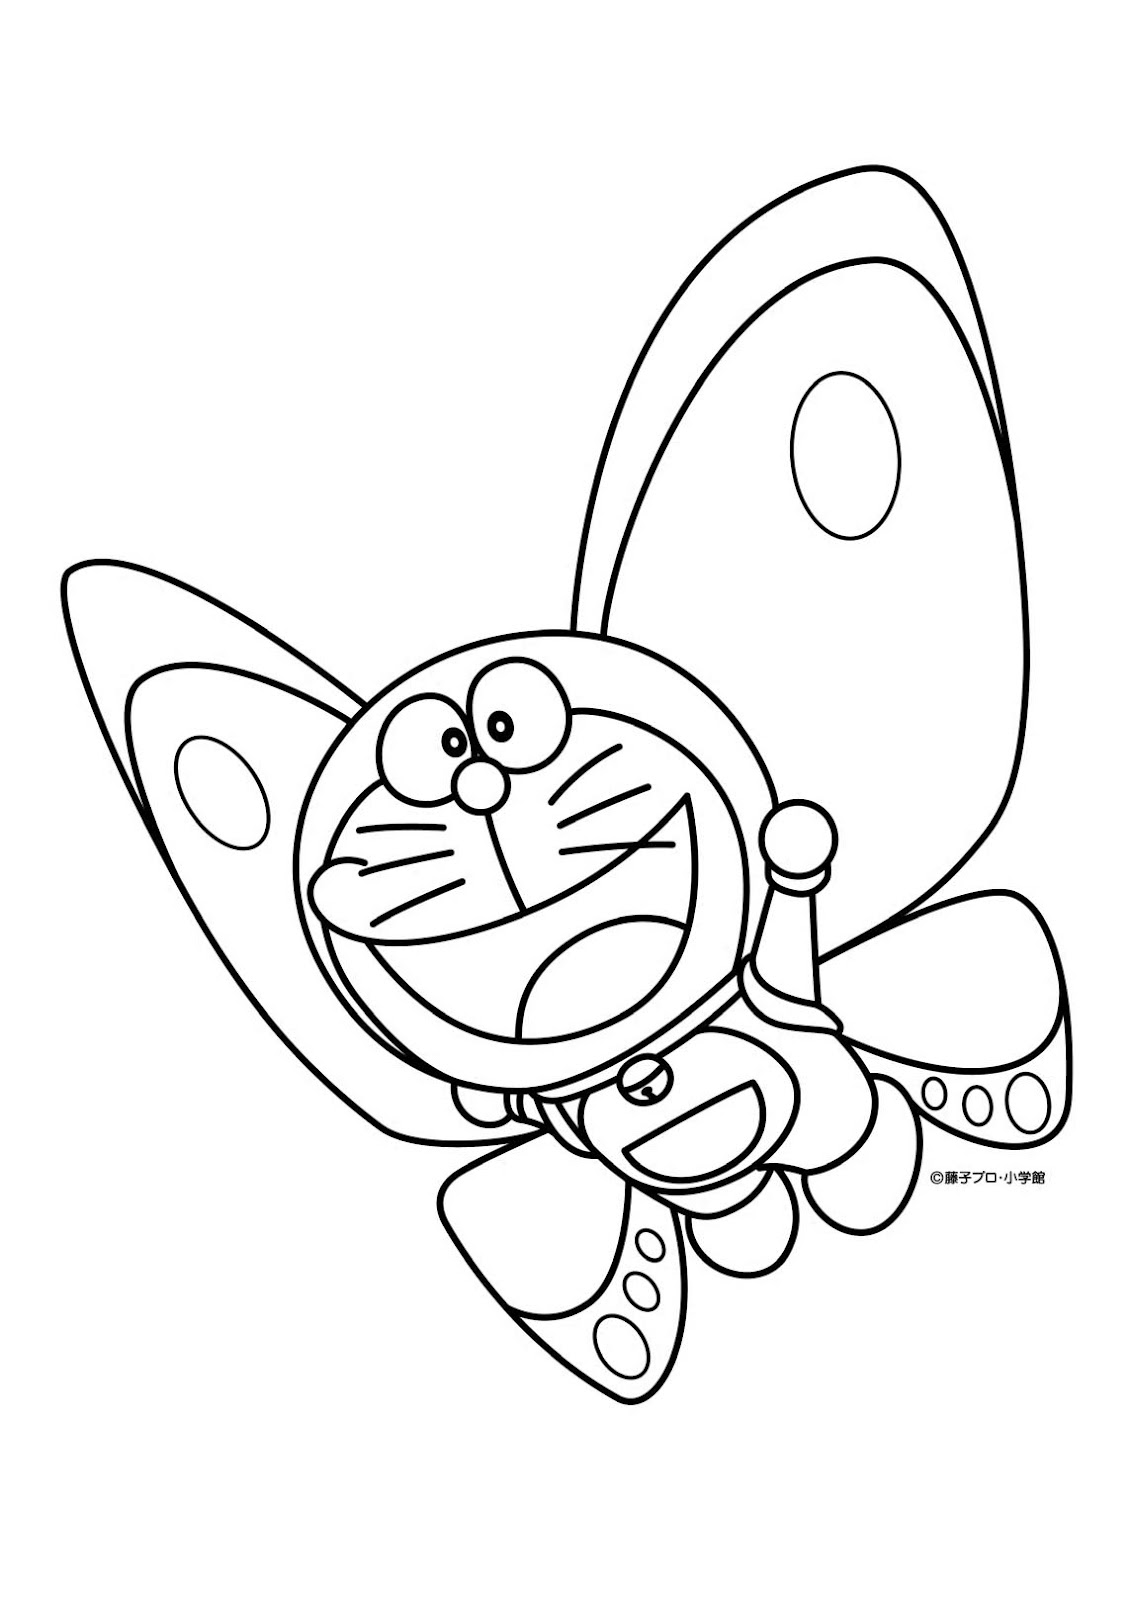 Animated cartoon doraemon coloring pages for kids for Doraemon coloring pages